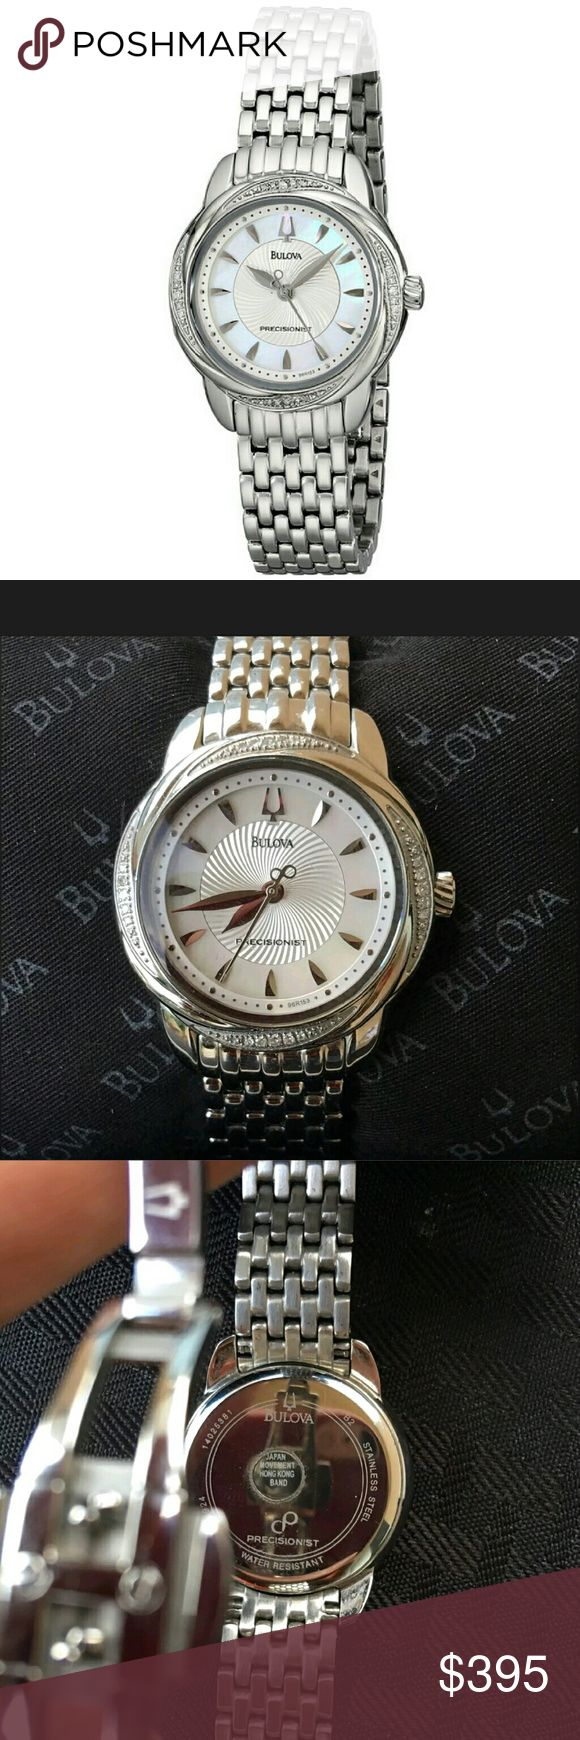 Nwt Bulova $650 Precisionist swirl watch Nwt Bulova Women's Precisionist Brightwater Swirl pattern Watch  PRICE  $395.00 . AUTHENTIC WATCH  . AUTHENTIC BOX  . AUTHENTIC MANUAL    SHIPPING  PLEASE ALLOW FEW BUSINESS DAYS FOR ME TO SHIPPED IT OFF.I HAVE TO GET IT FROM MY WAREHOUSE.   THANK YOU FOR YOUR UNDERSTANDING. Bulova  Accessories Watches